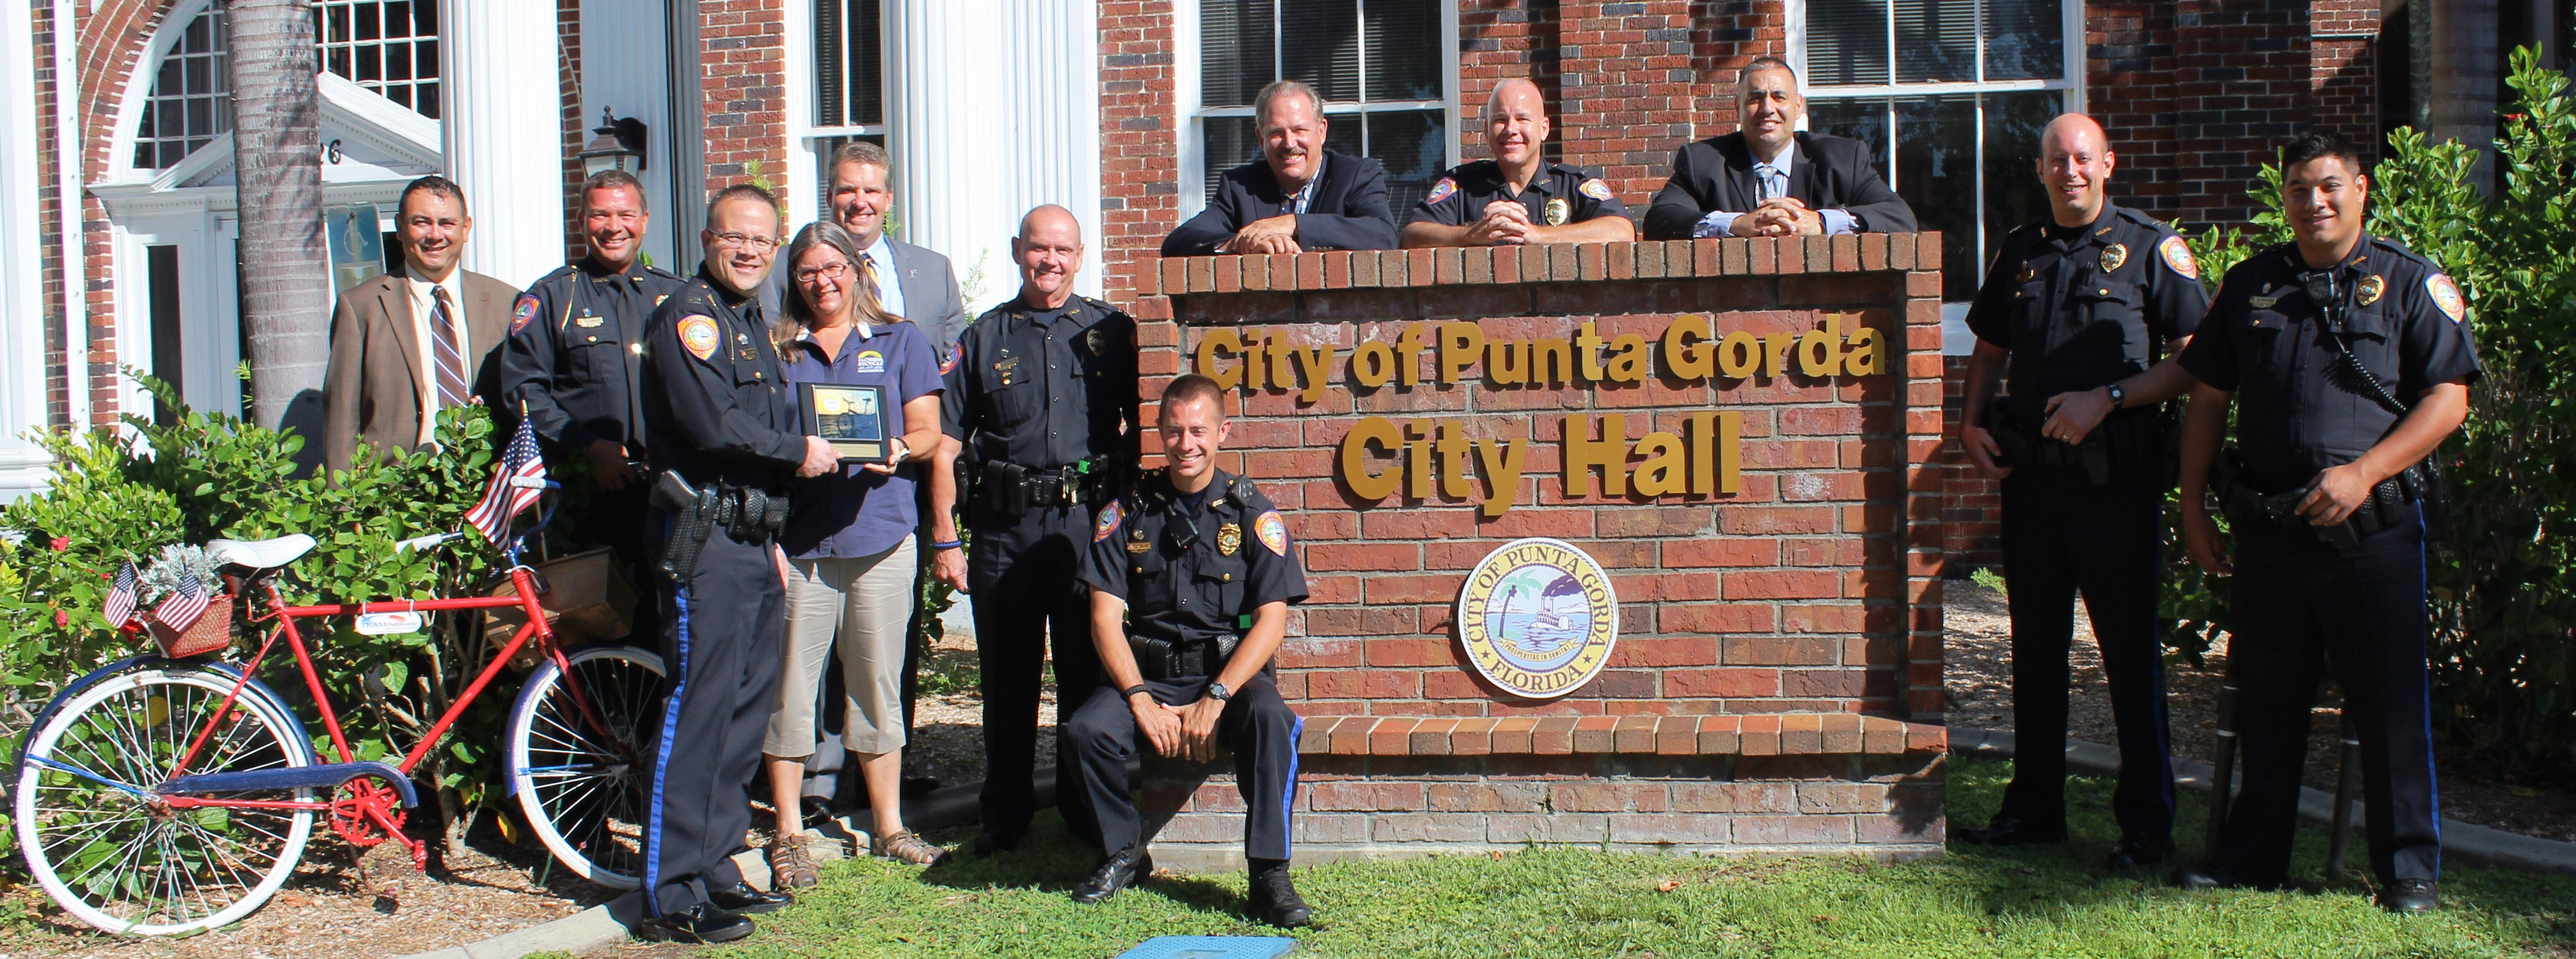 City of Punta Gorda Police Department